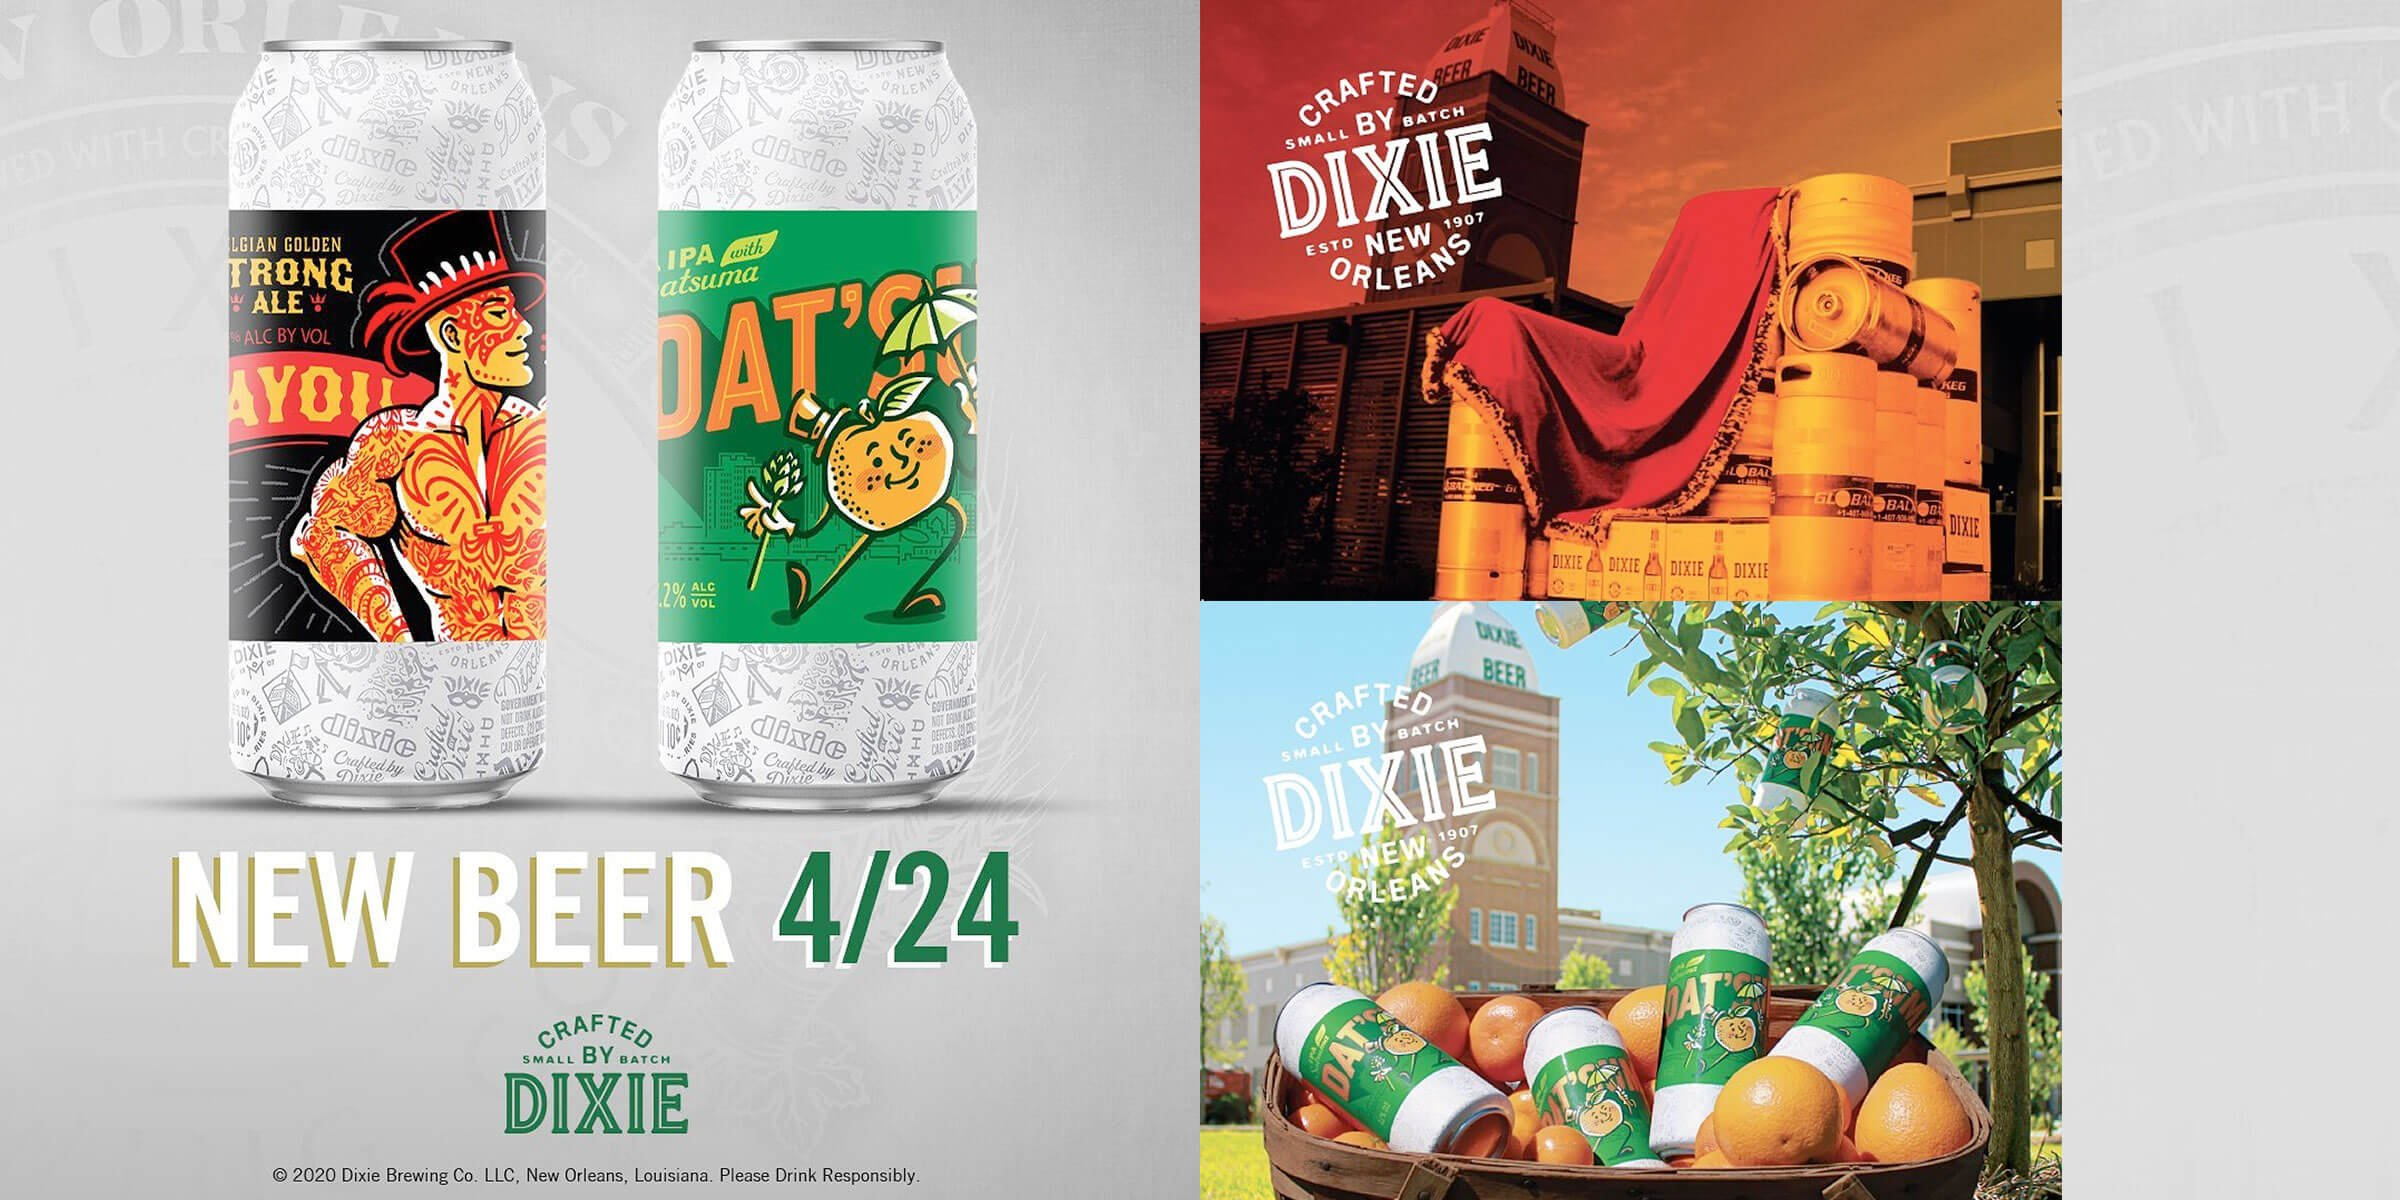 Dixie Brewing Company announced the release of two new Crafted by Dixie innovation beers — DAT'SUMA India Pale Ale and Bayou King Golden Strong Ale.